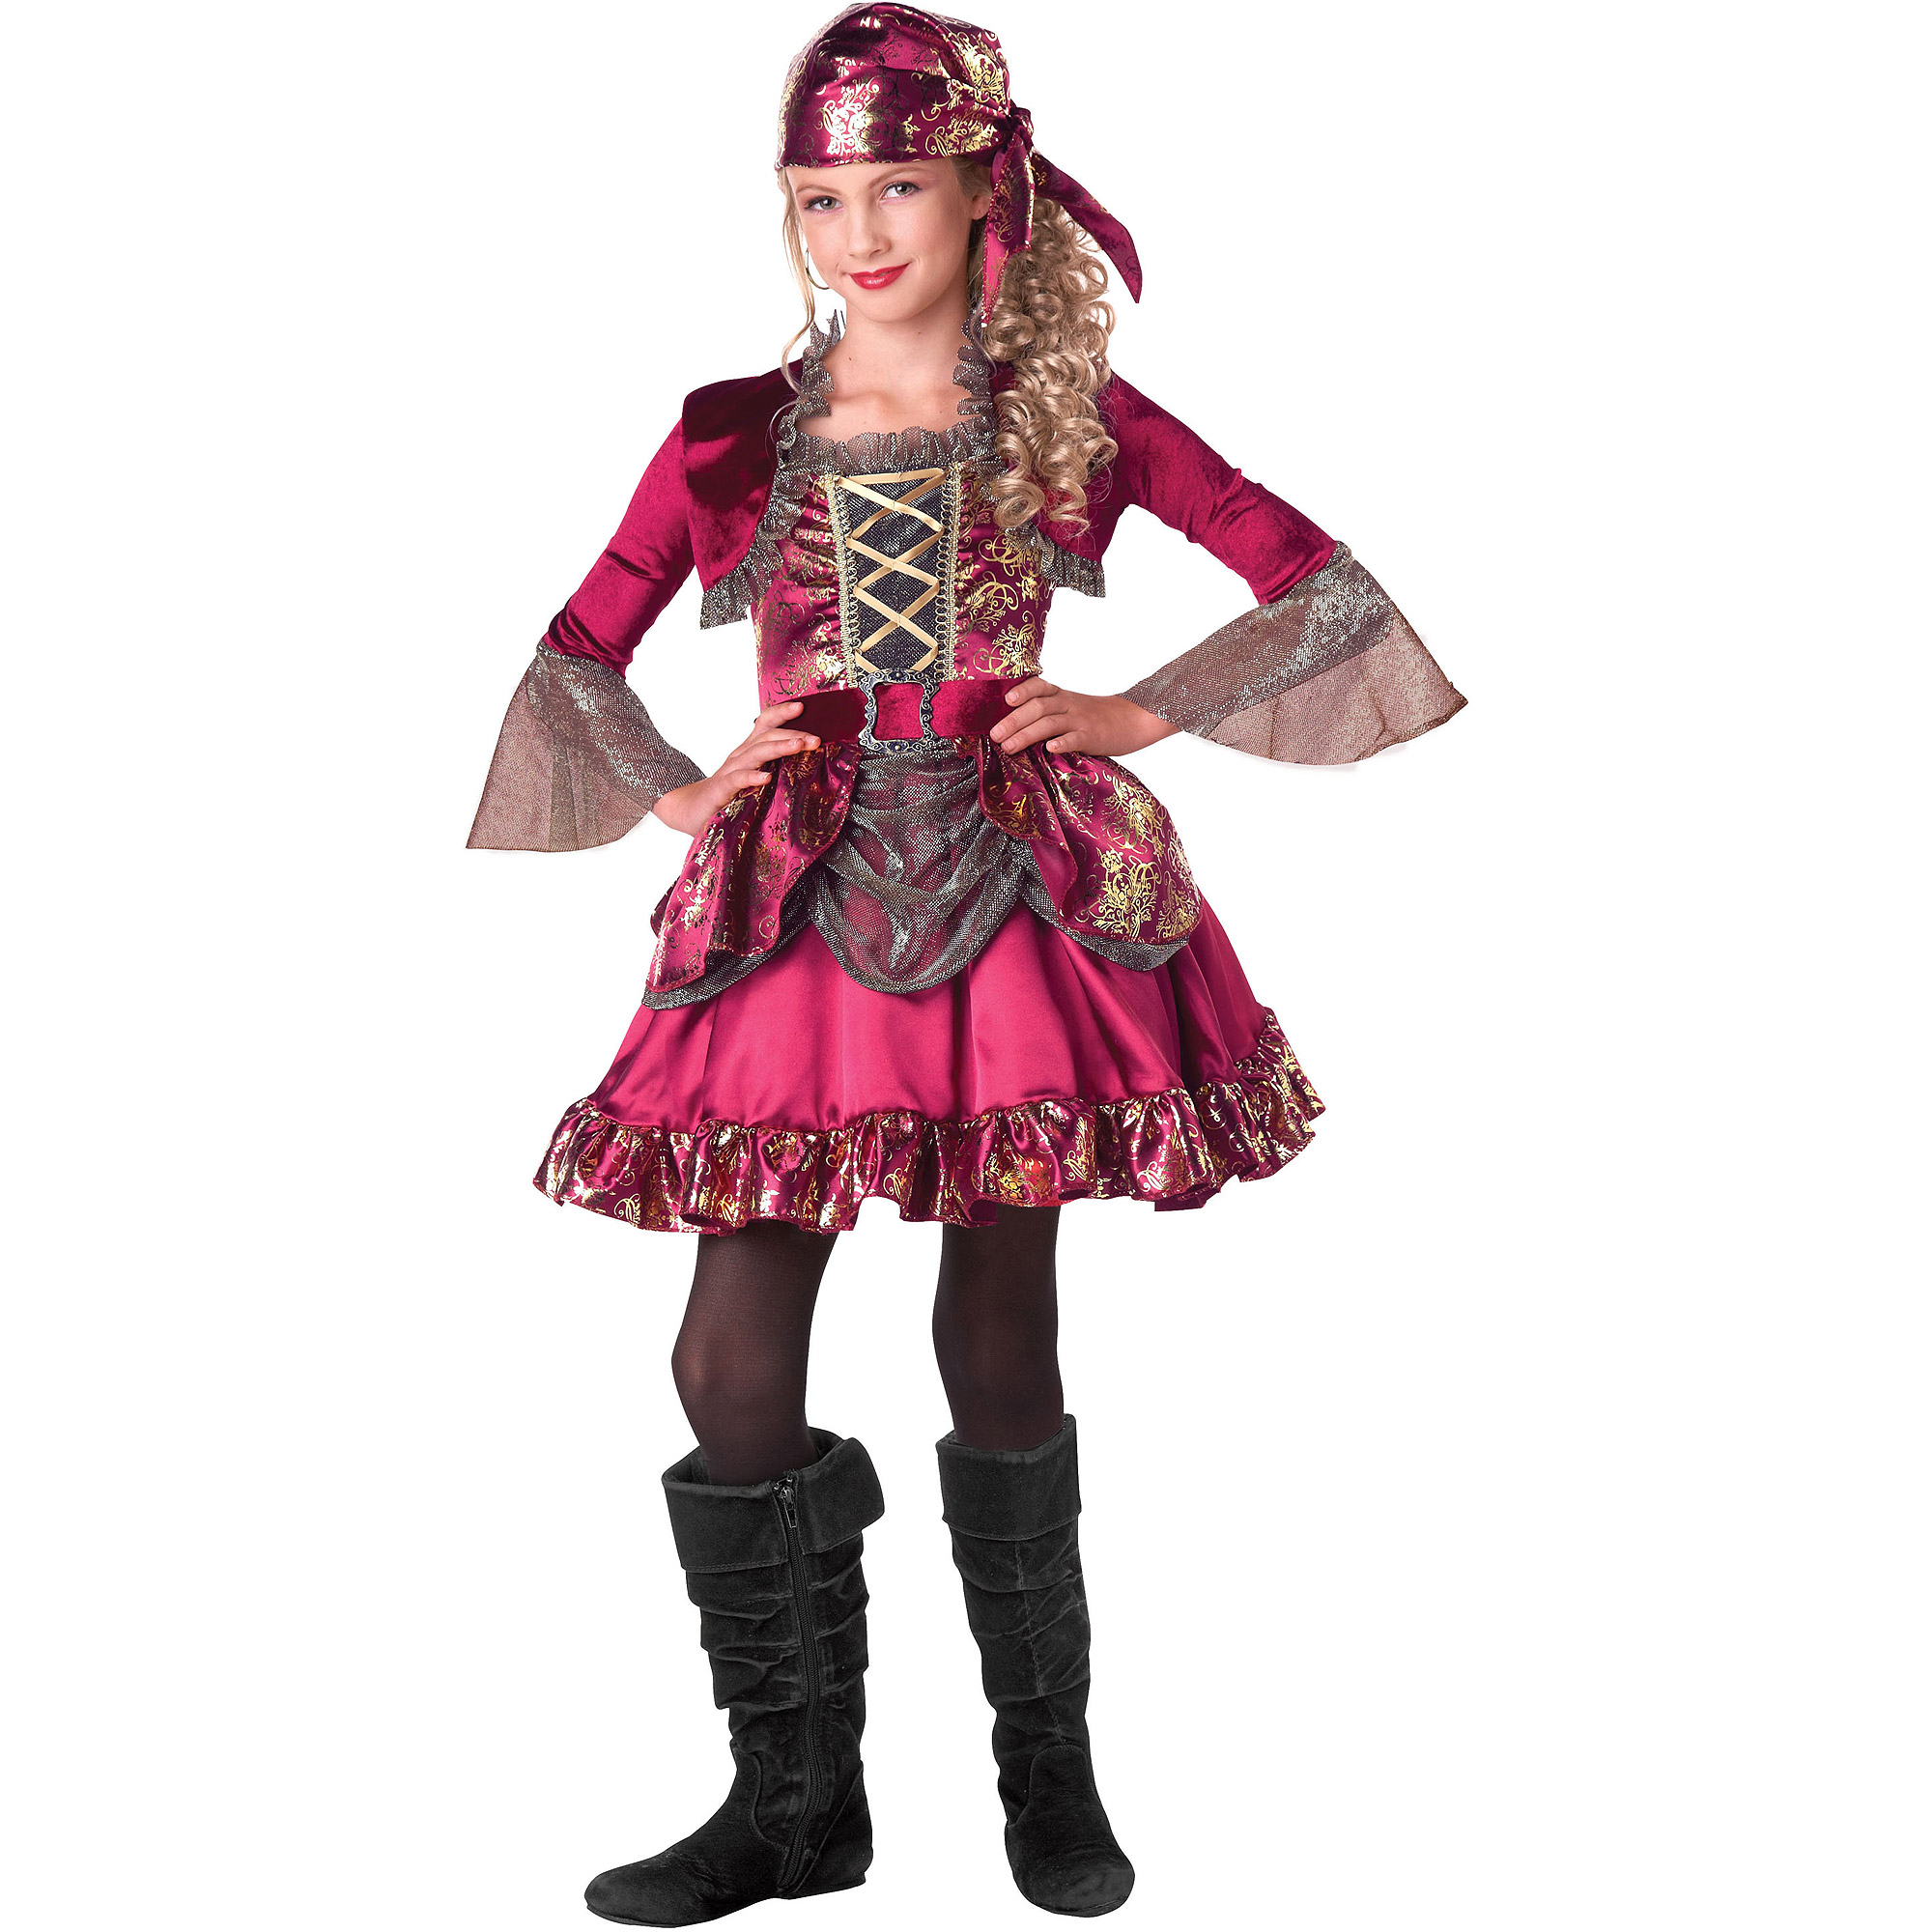 Pretty Pirate Girls Halloween Costume by SEASONS HK LTD